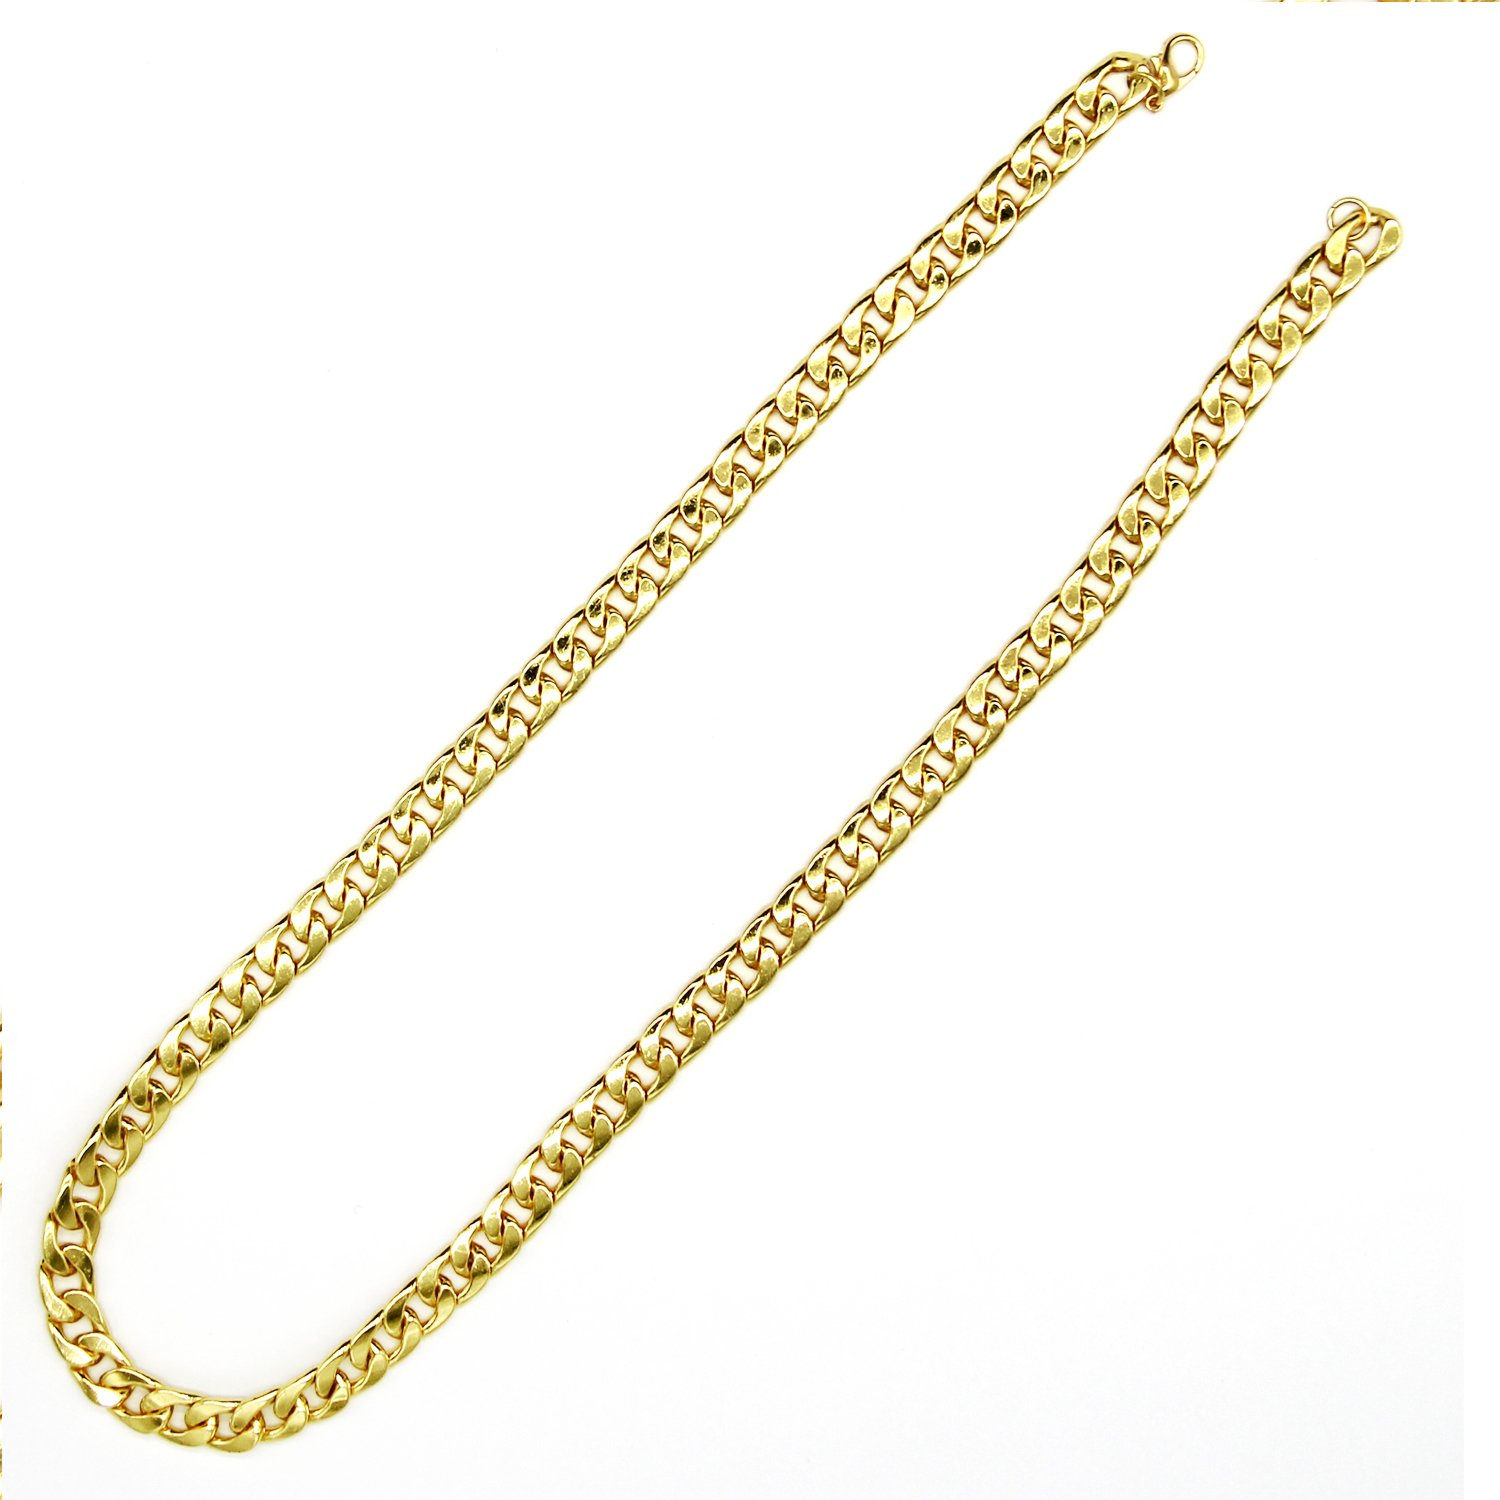 1960s Men's Clothing, 70s Men's Fashion TOOL GADGET Fake Gold Chain Necklace Super Luxury & Looks So Real. Stainless Steel Gold Flat Chain Curb Chains 6mm (24 inches) Fake Gold Coating Never Fade $8.99 AT vintagedancer.com